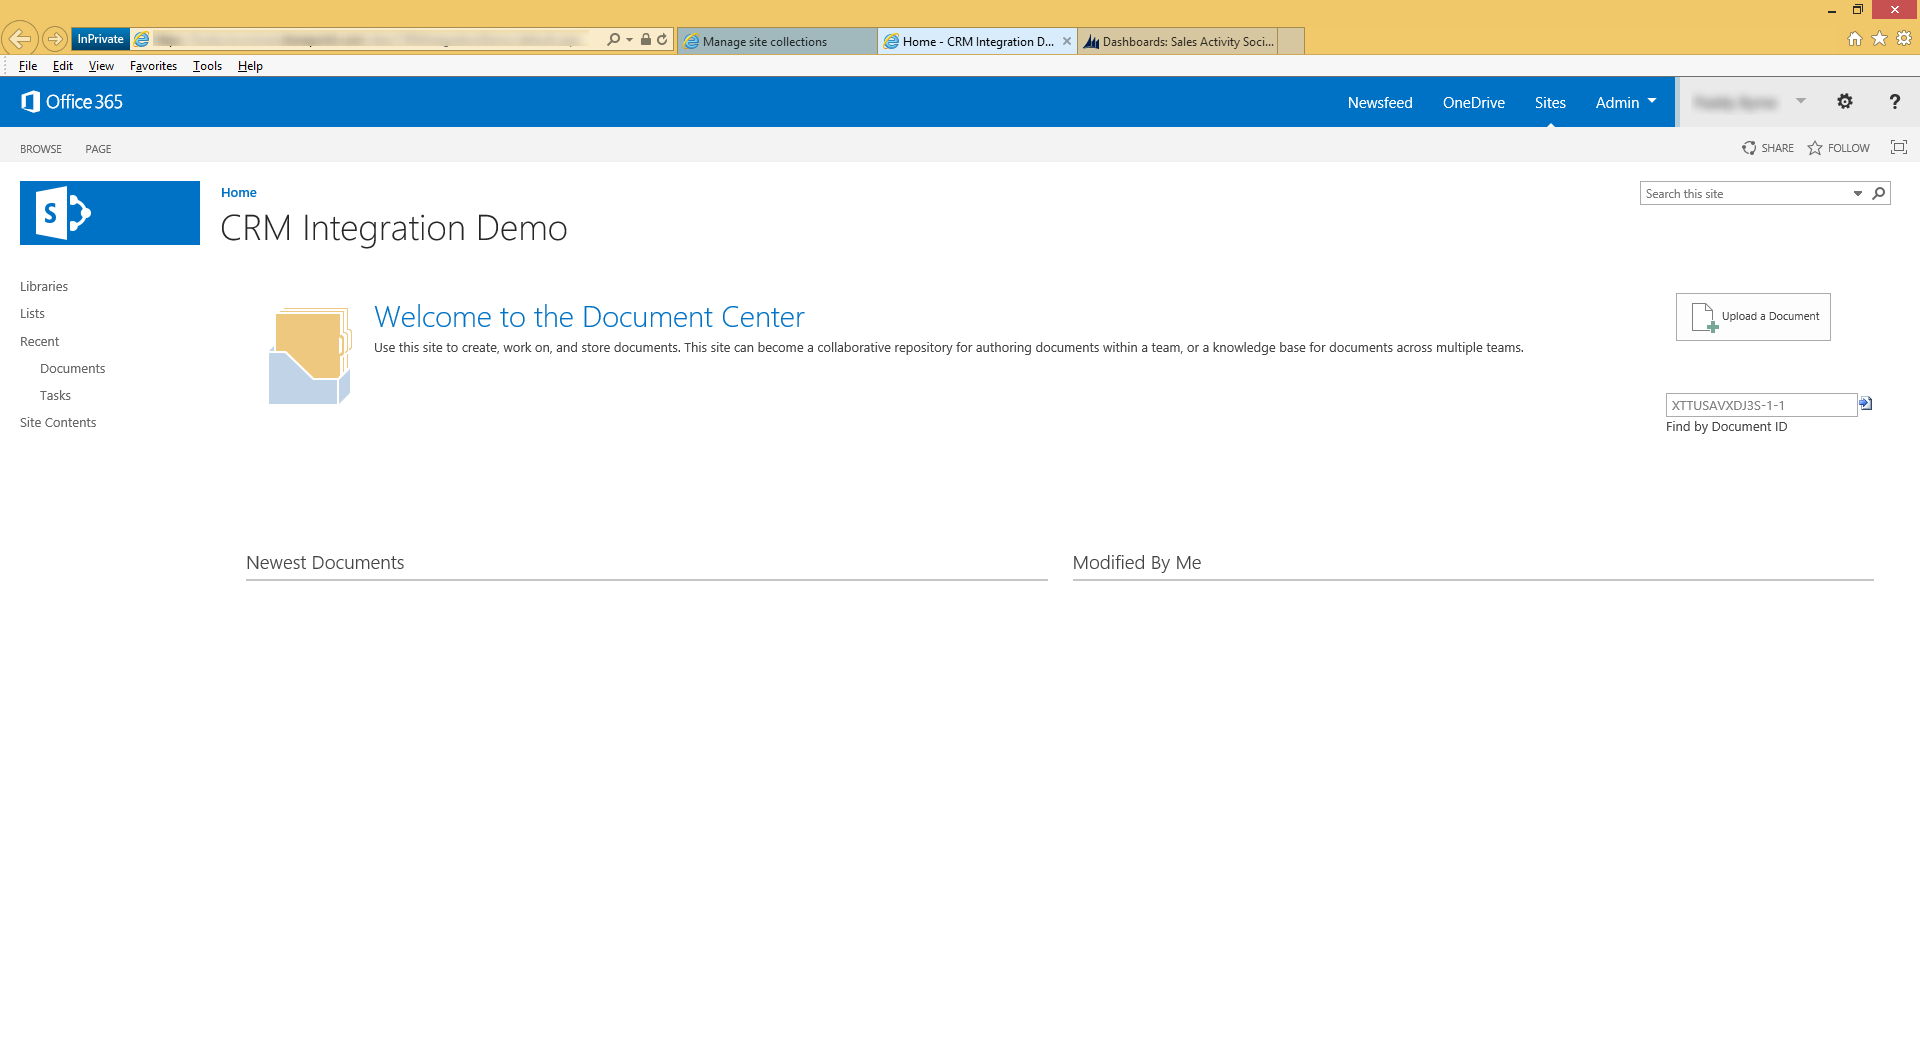 CRM intergration demo welcome to the document center